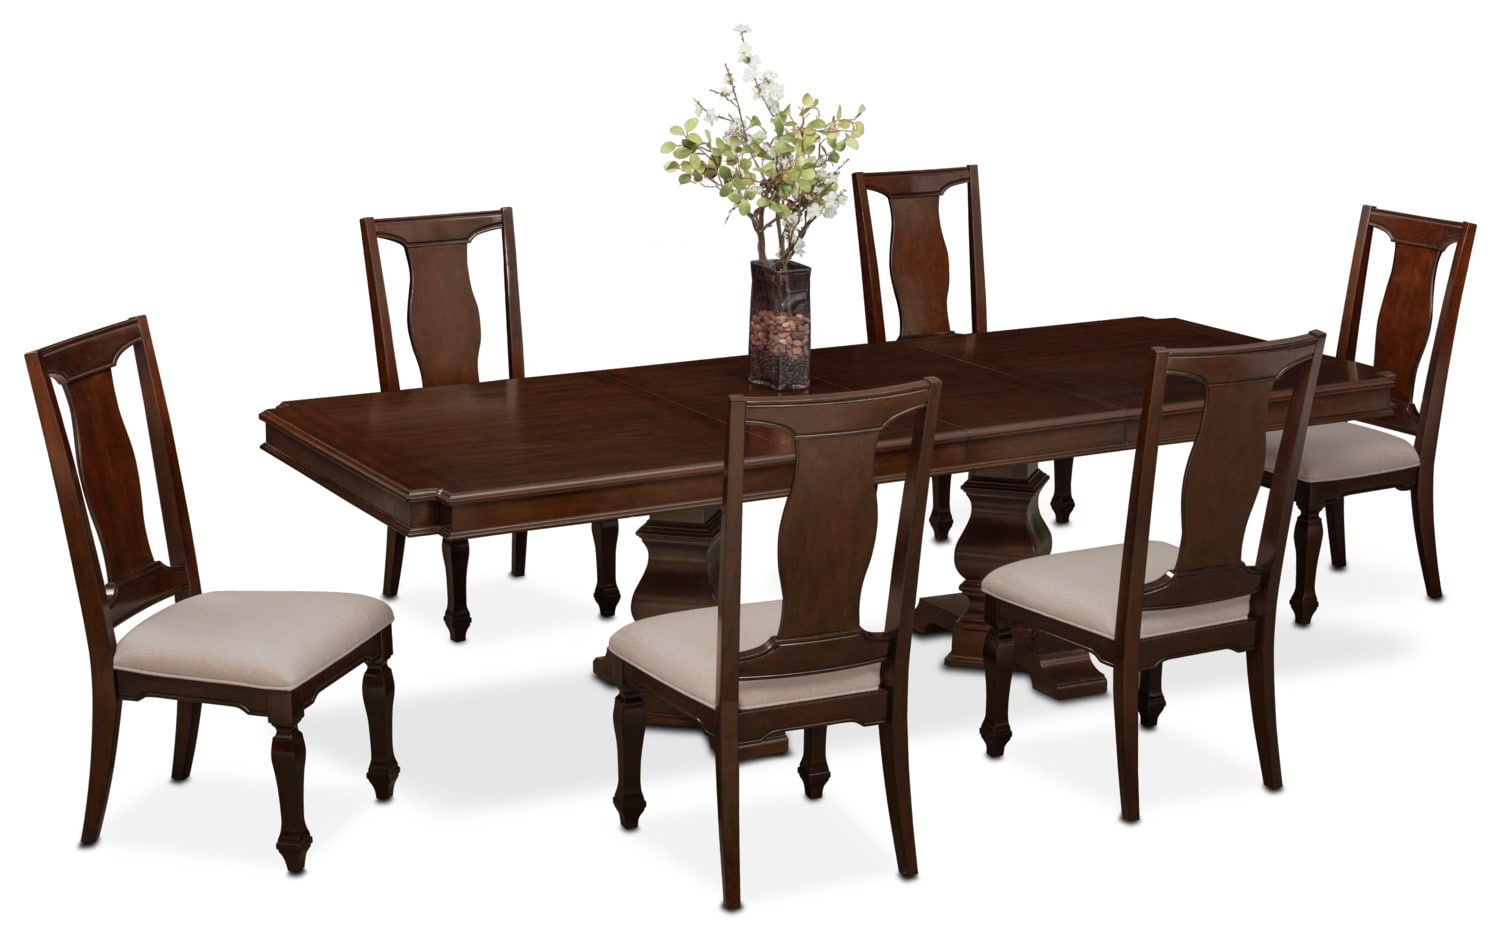 dining room sets 6 chairs all weather india shop 7 piece value city tap to change vienna table and side merlot